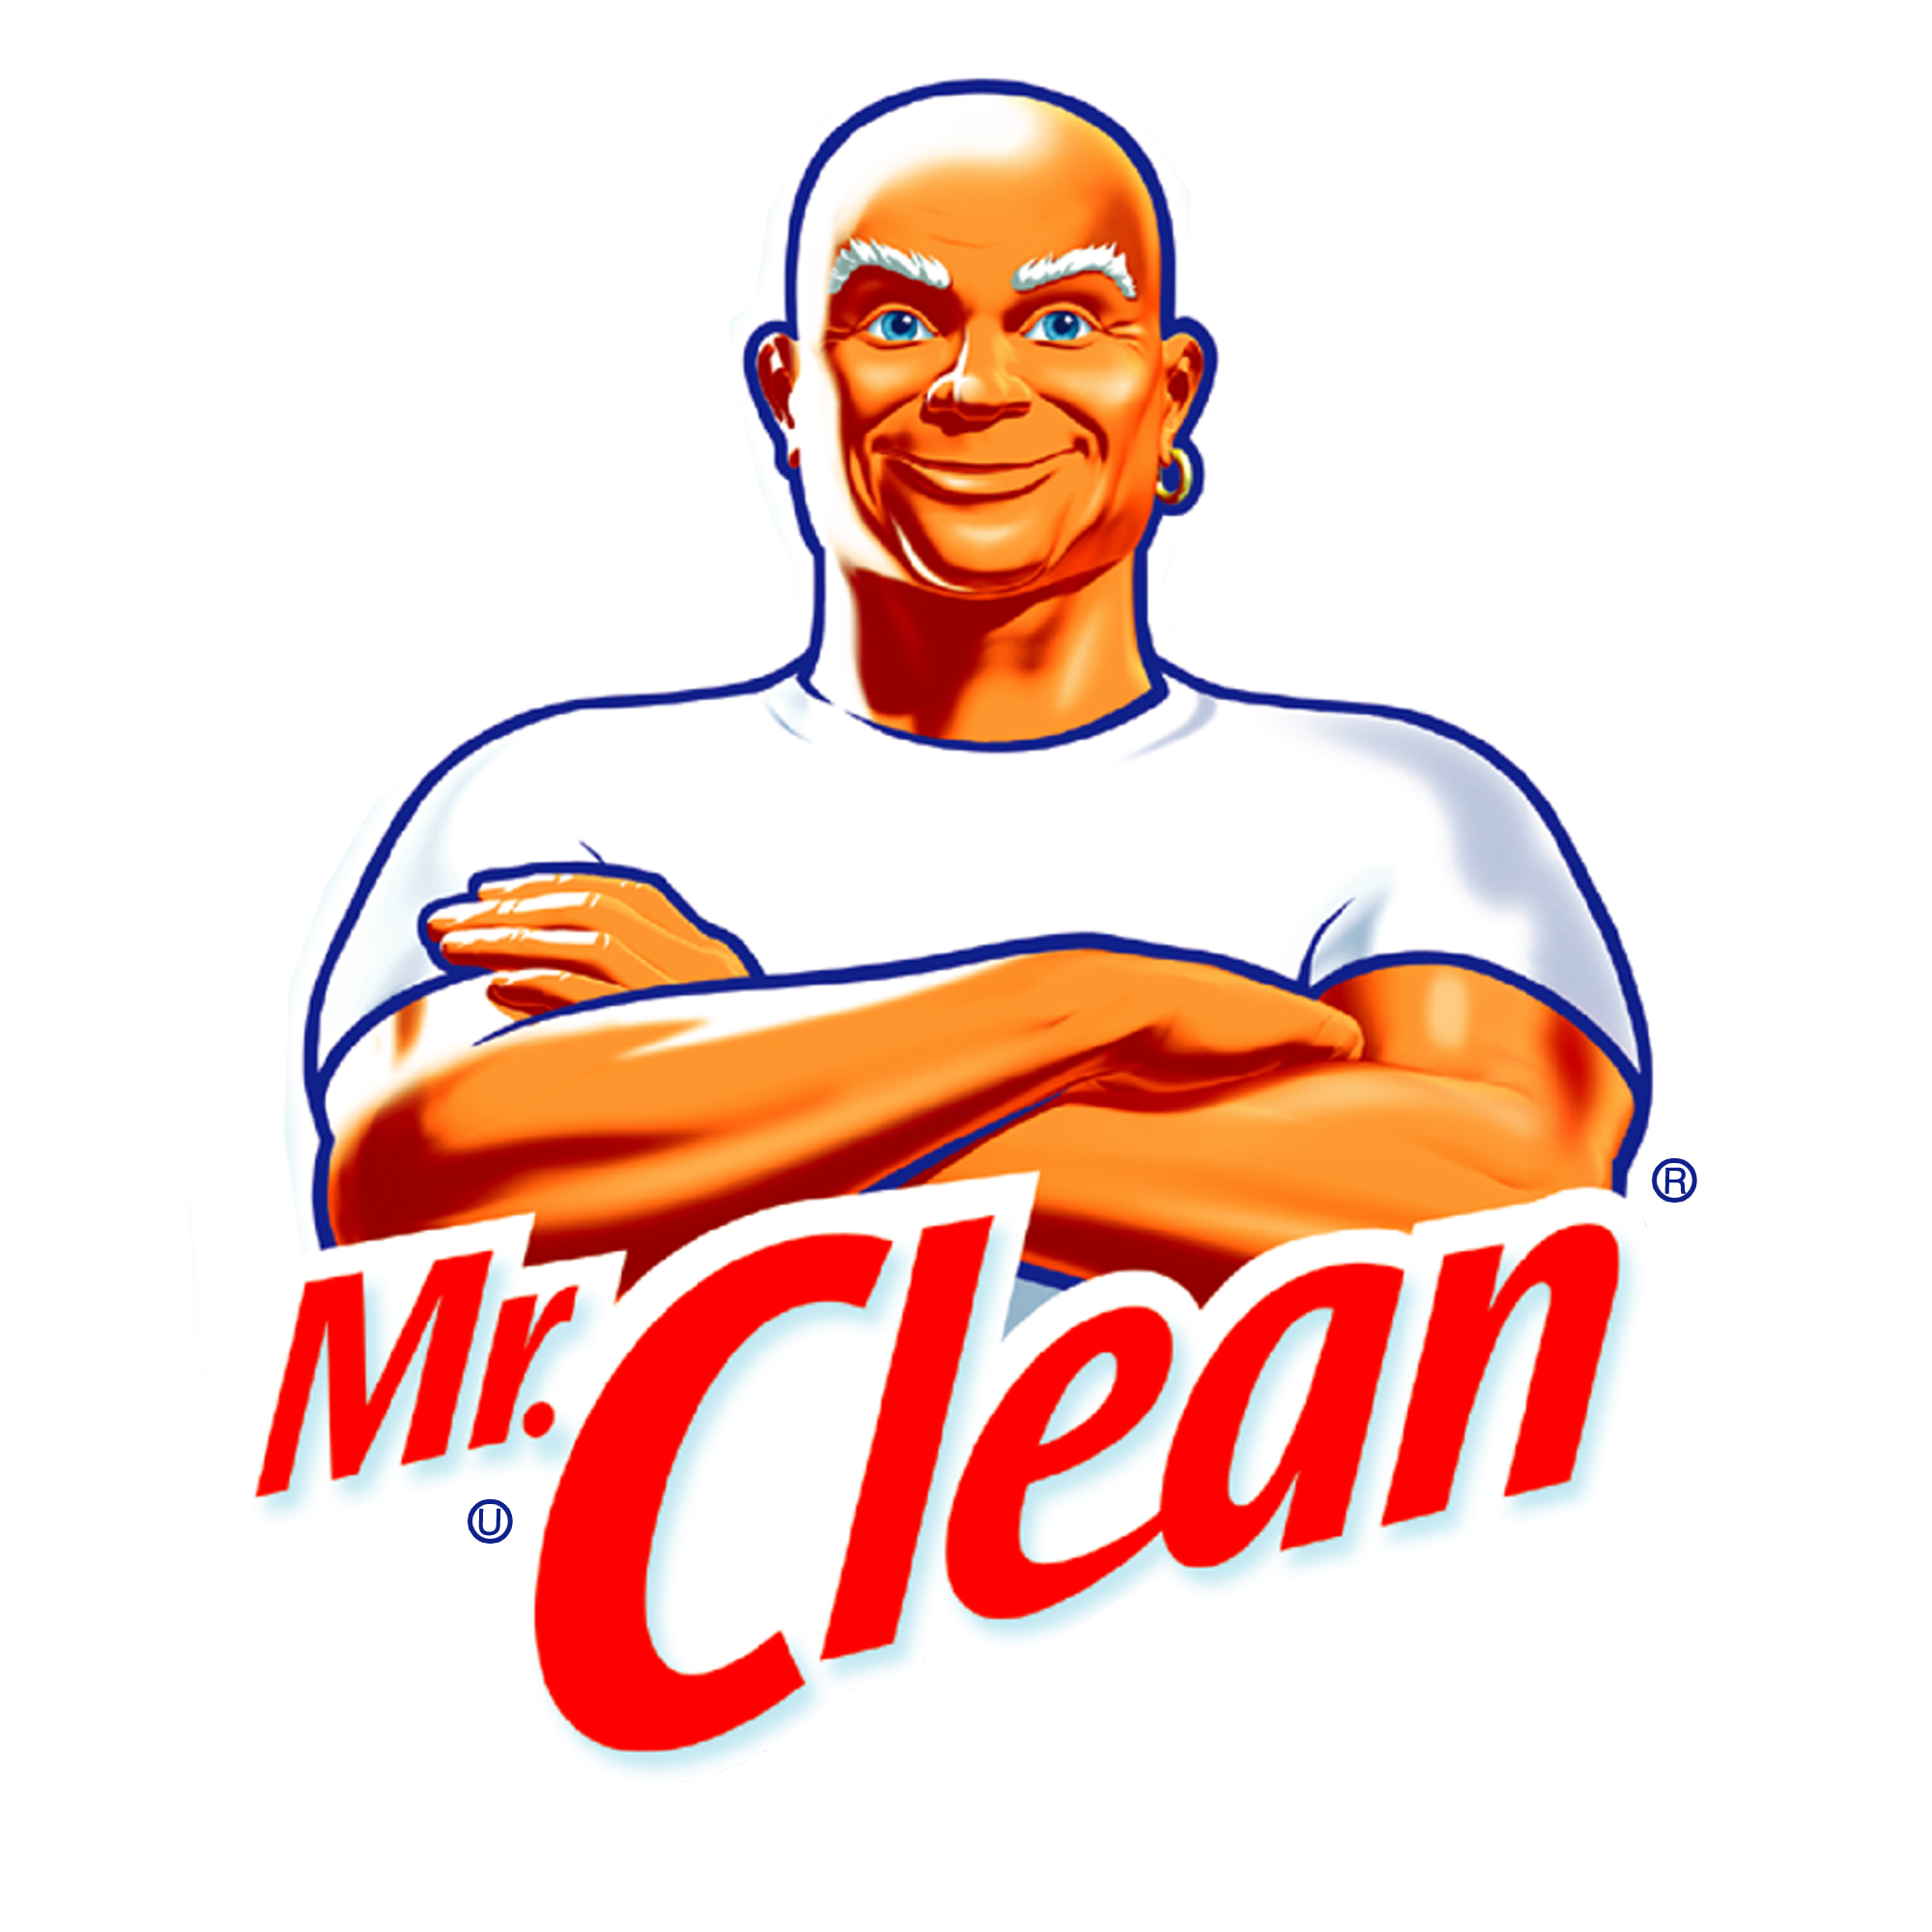 Mr Clean Chris Jackson